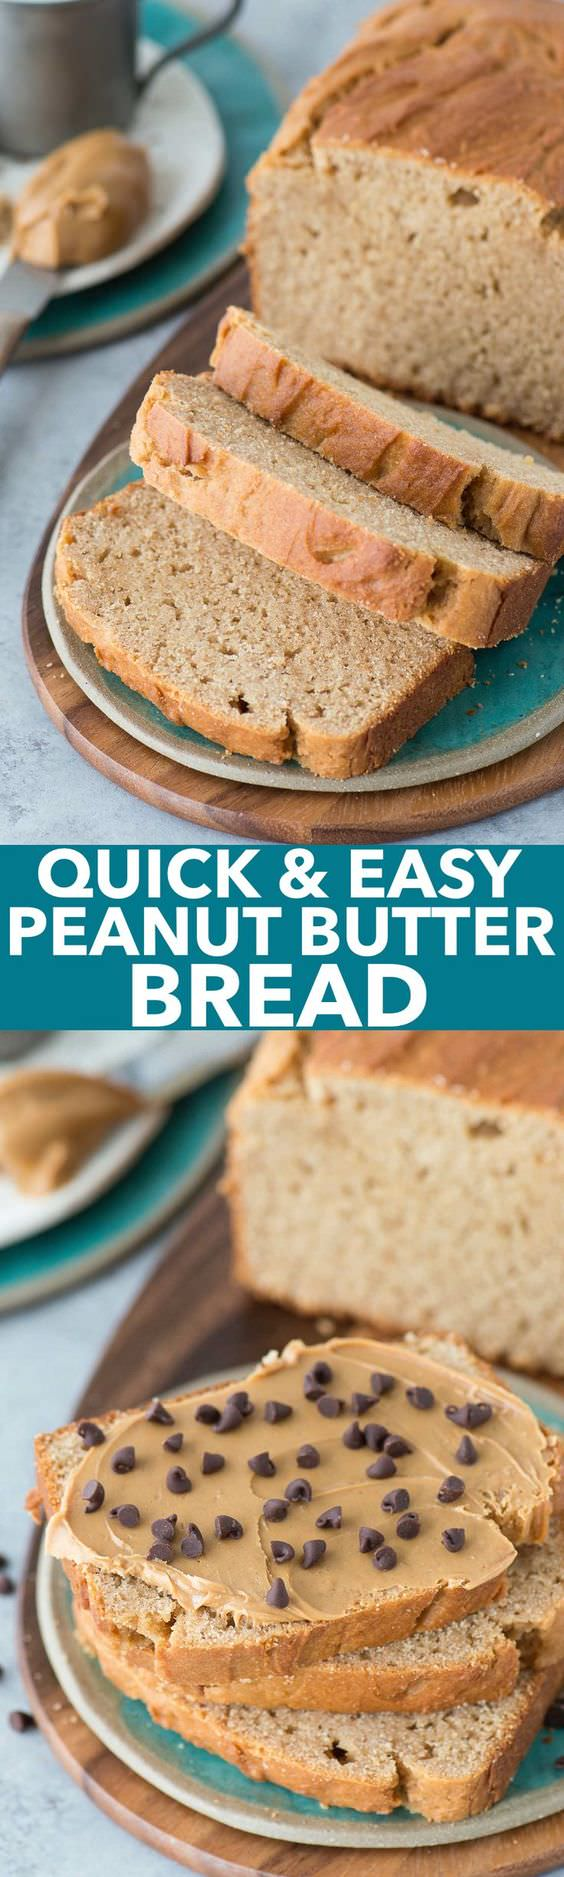 This easy to make and delicious peanut butter quick bread is perfect for breakfast or snack time!